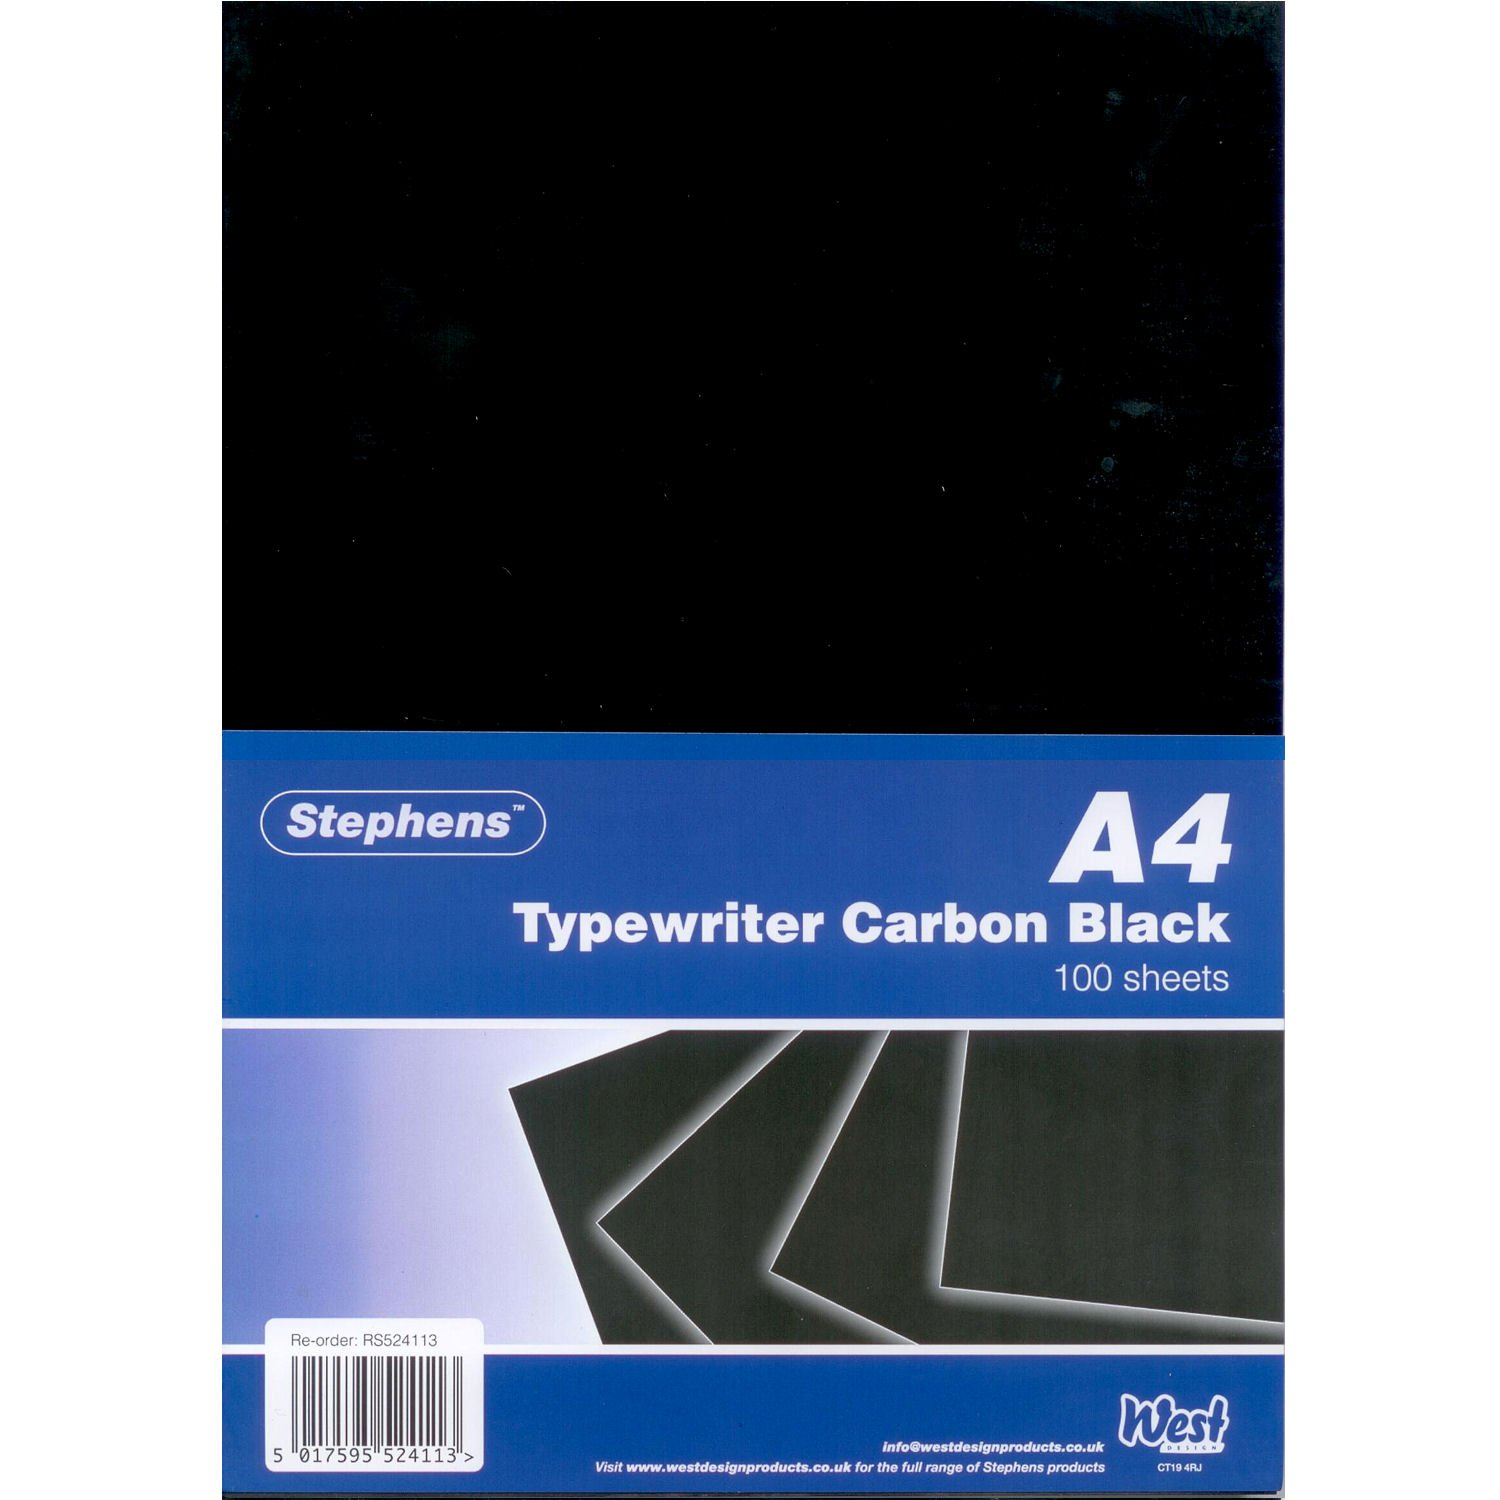 Stephens Typewriter Carbon Paper Black A4 (100 Sheets) RS524113